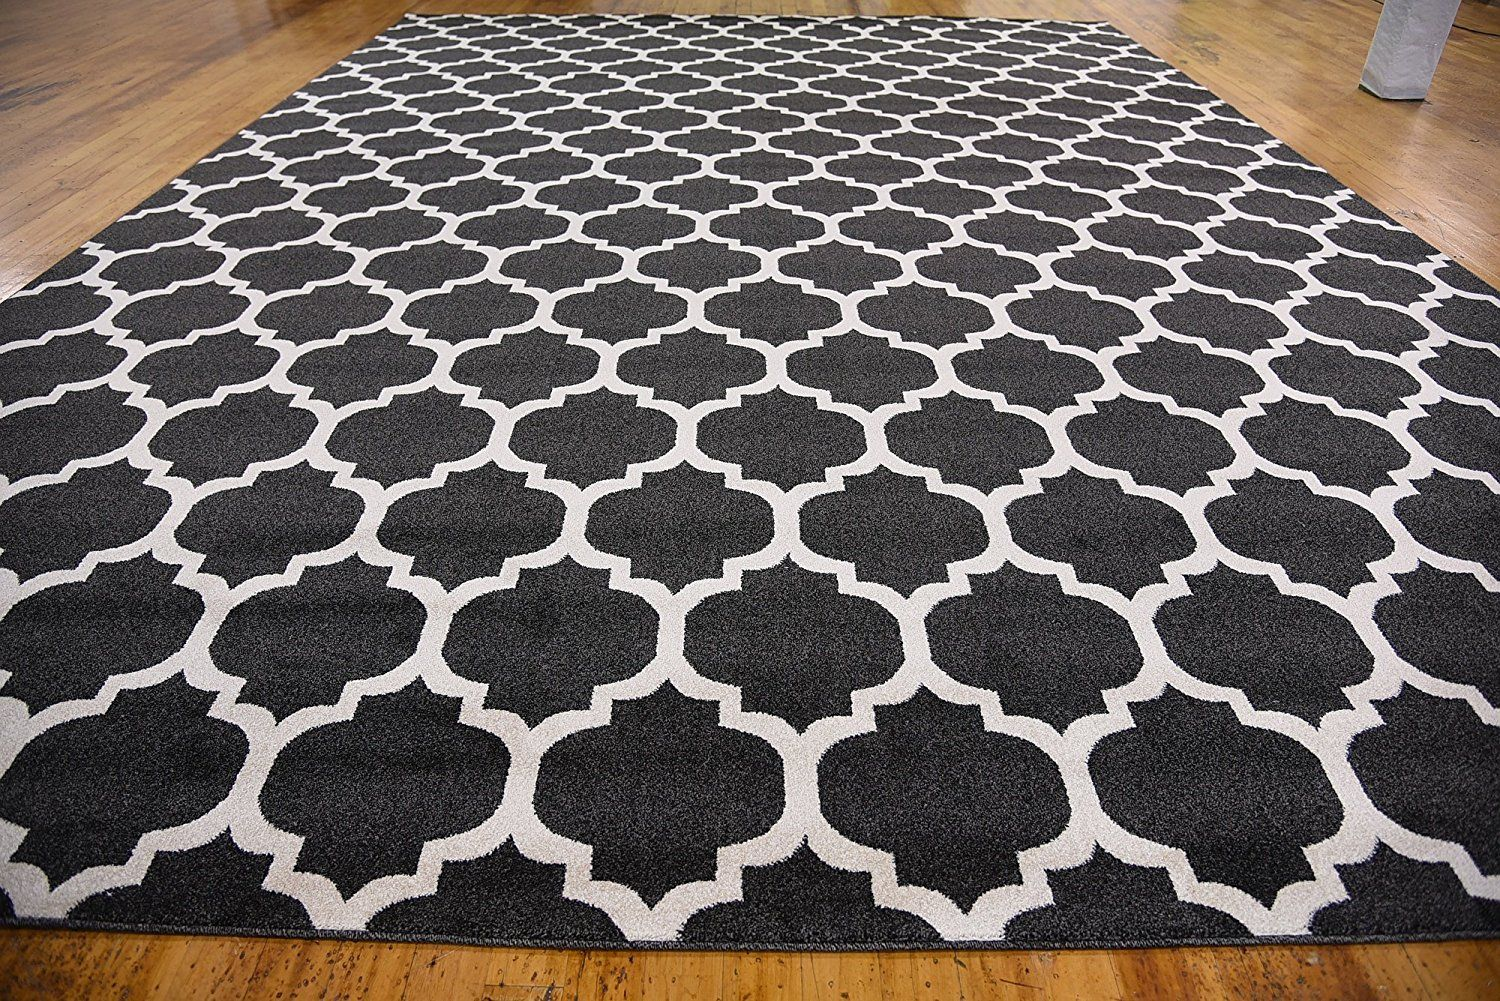 13 Feet Area Rugs Black And White Affiliate Link Inexpensive